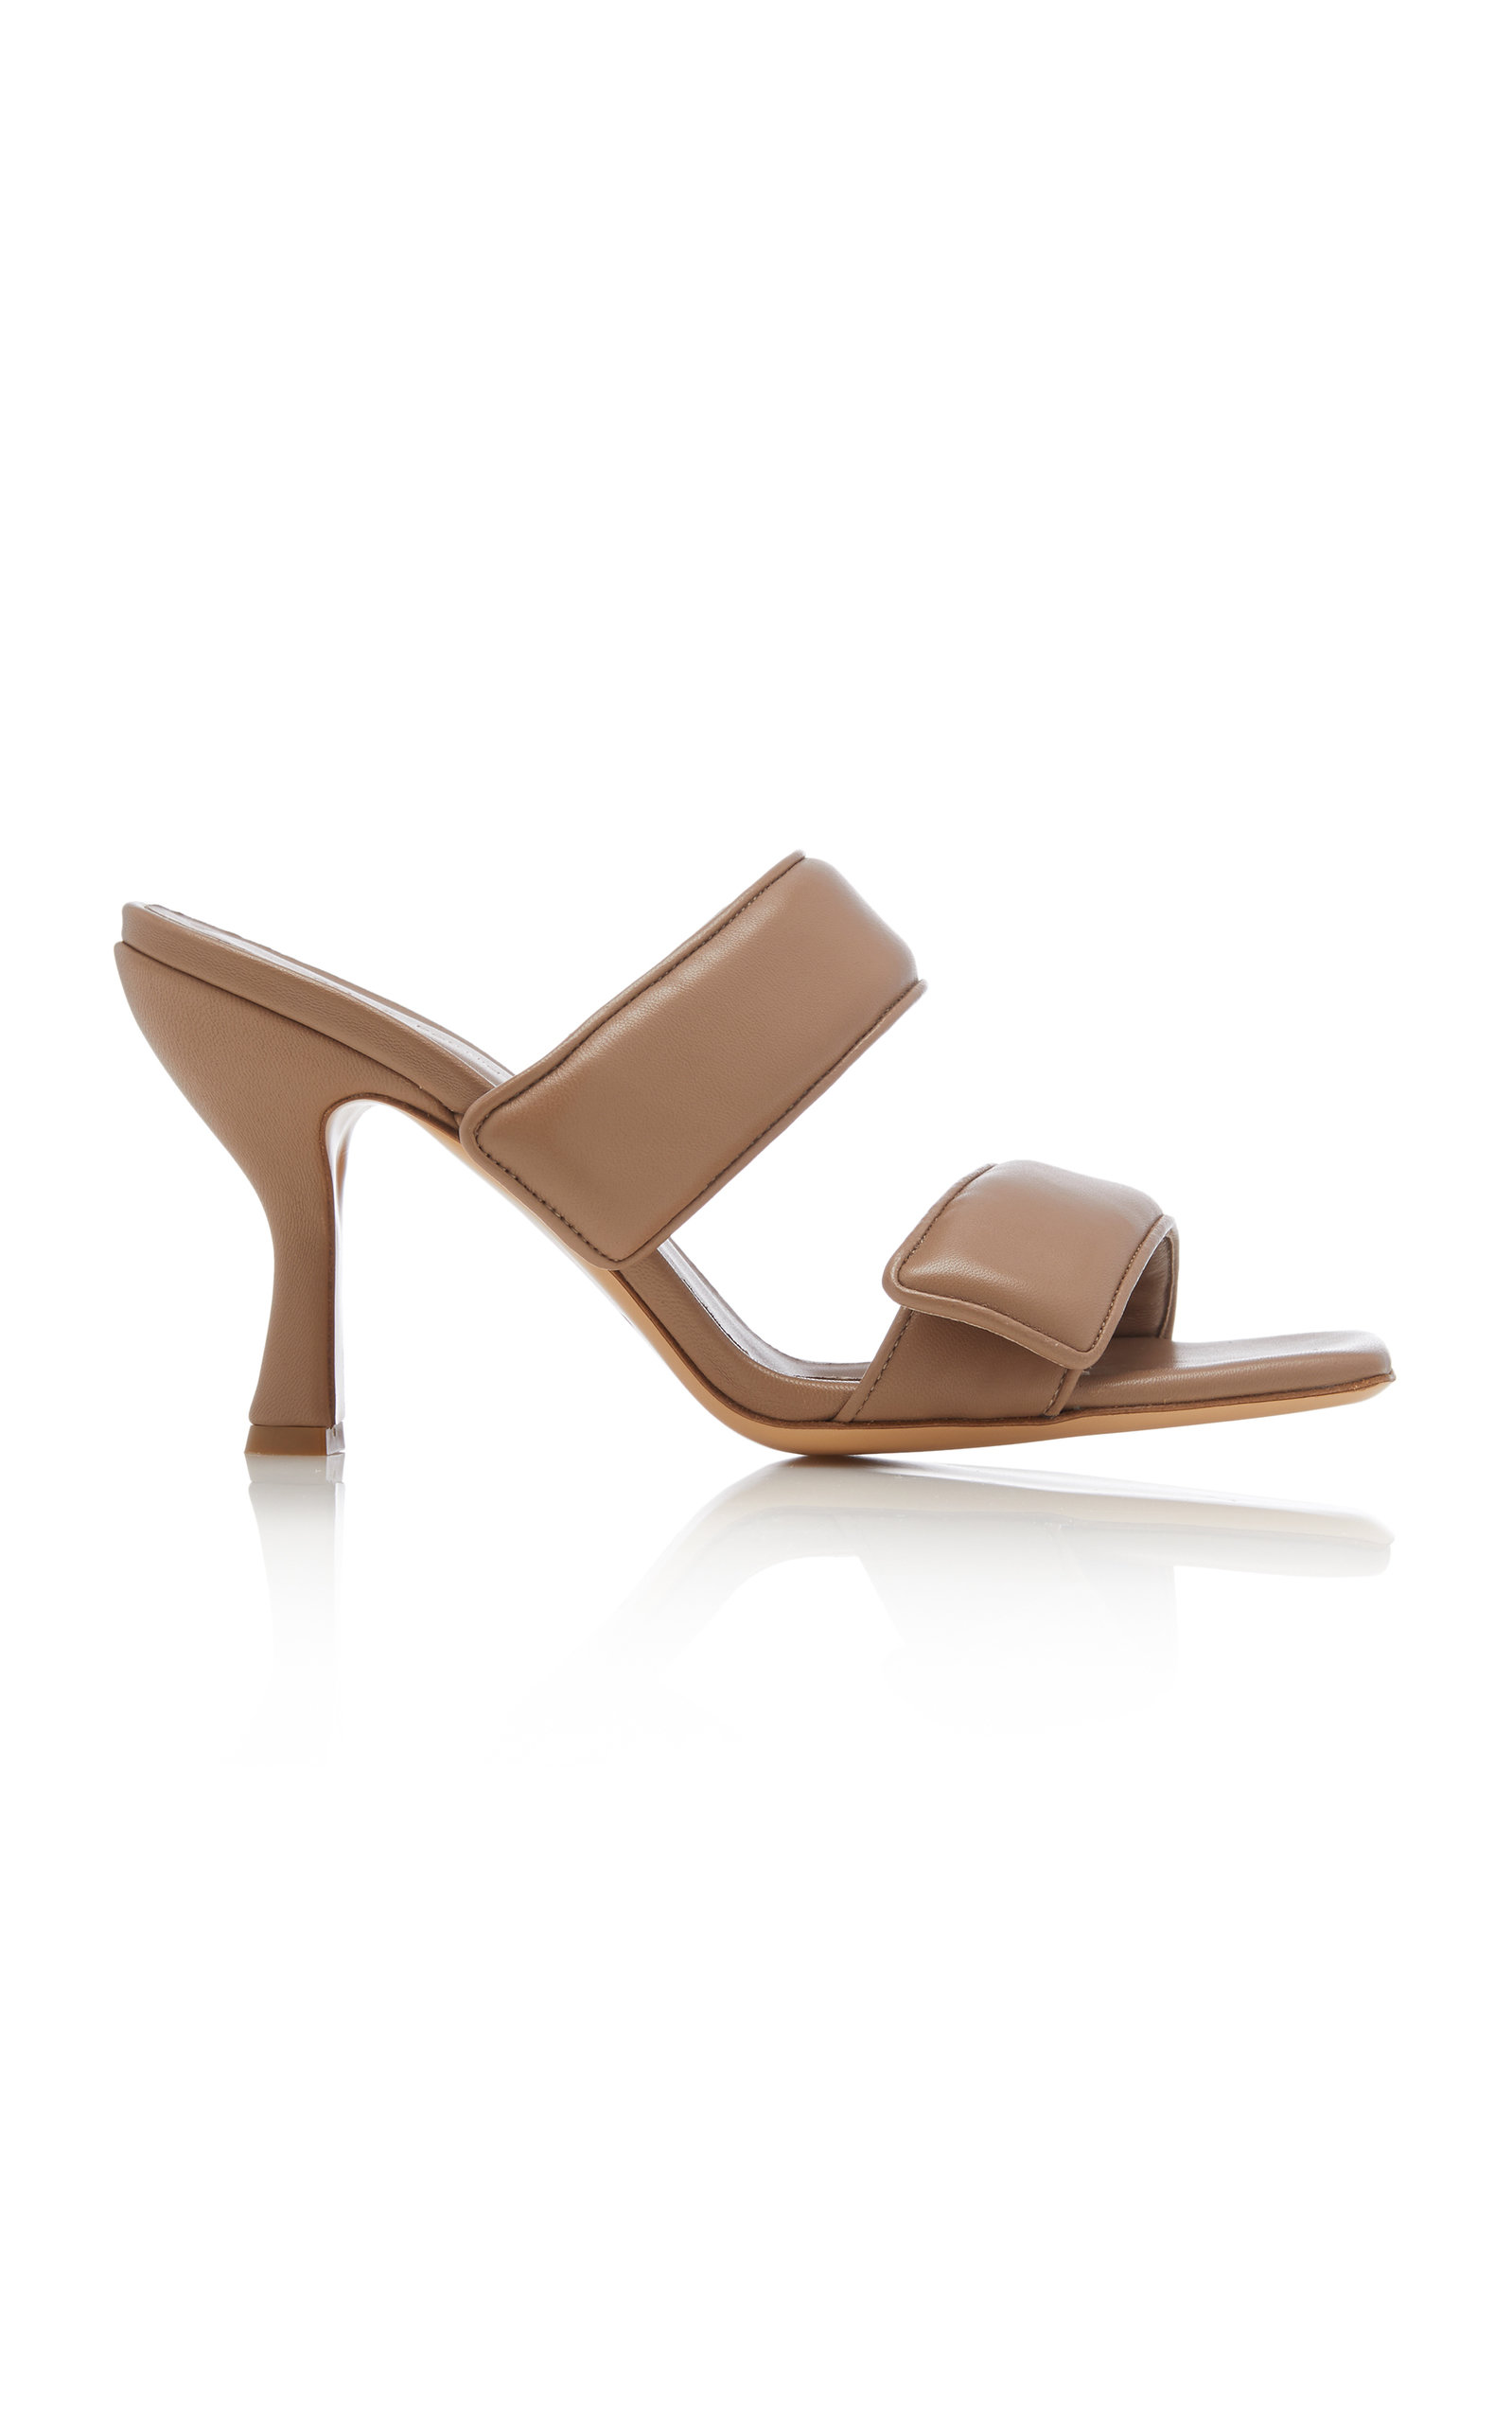 Gia X Pernille Teisbaek PADDED LEATHER SANDALS